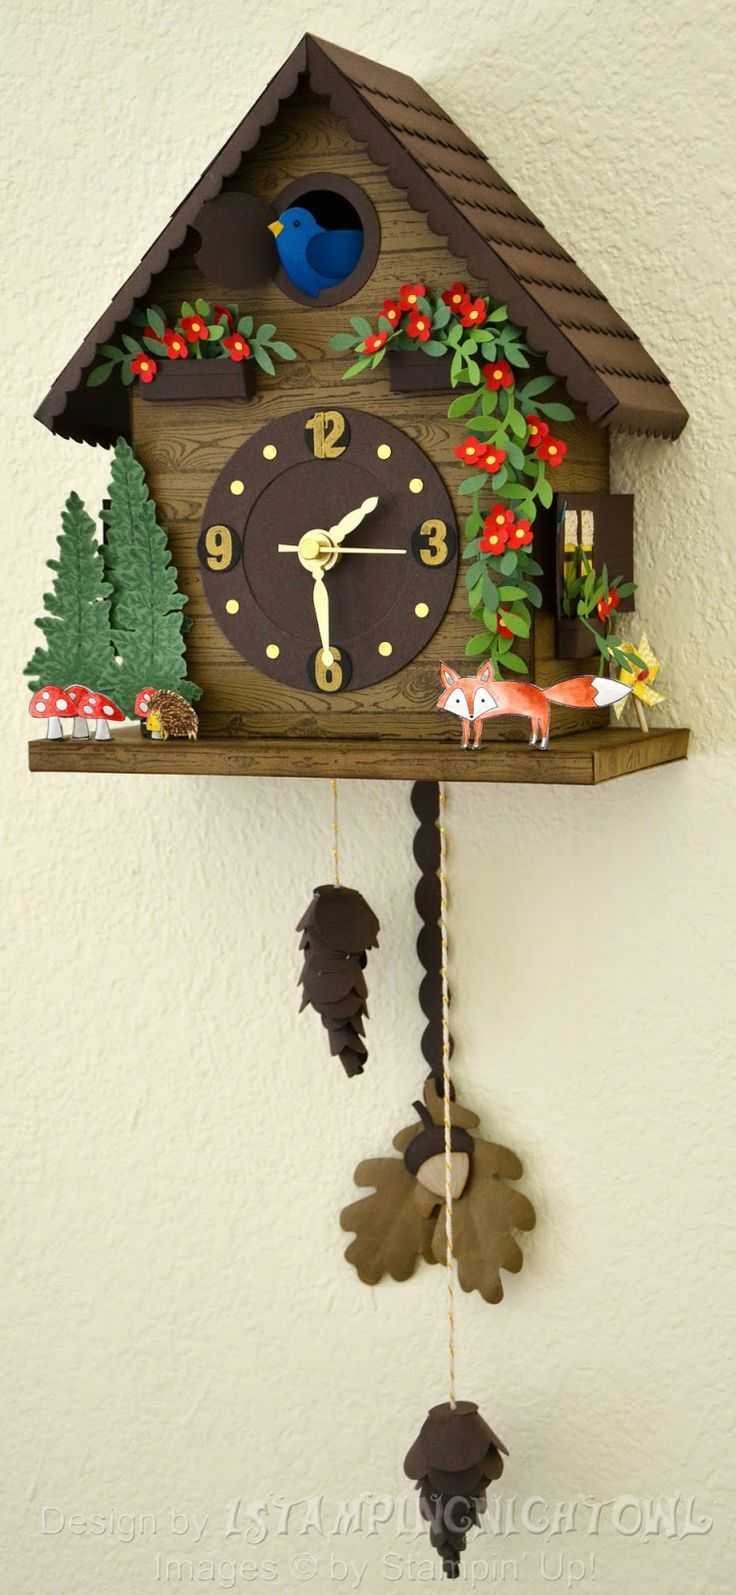 1stampingnightowl: Event Display Stamper Application - Paper Swiss Cuckoo clock - it works! More pictures and closeups of details in post.: